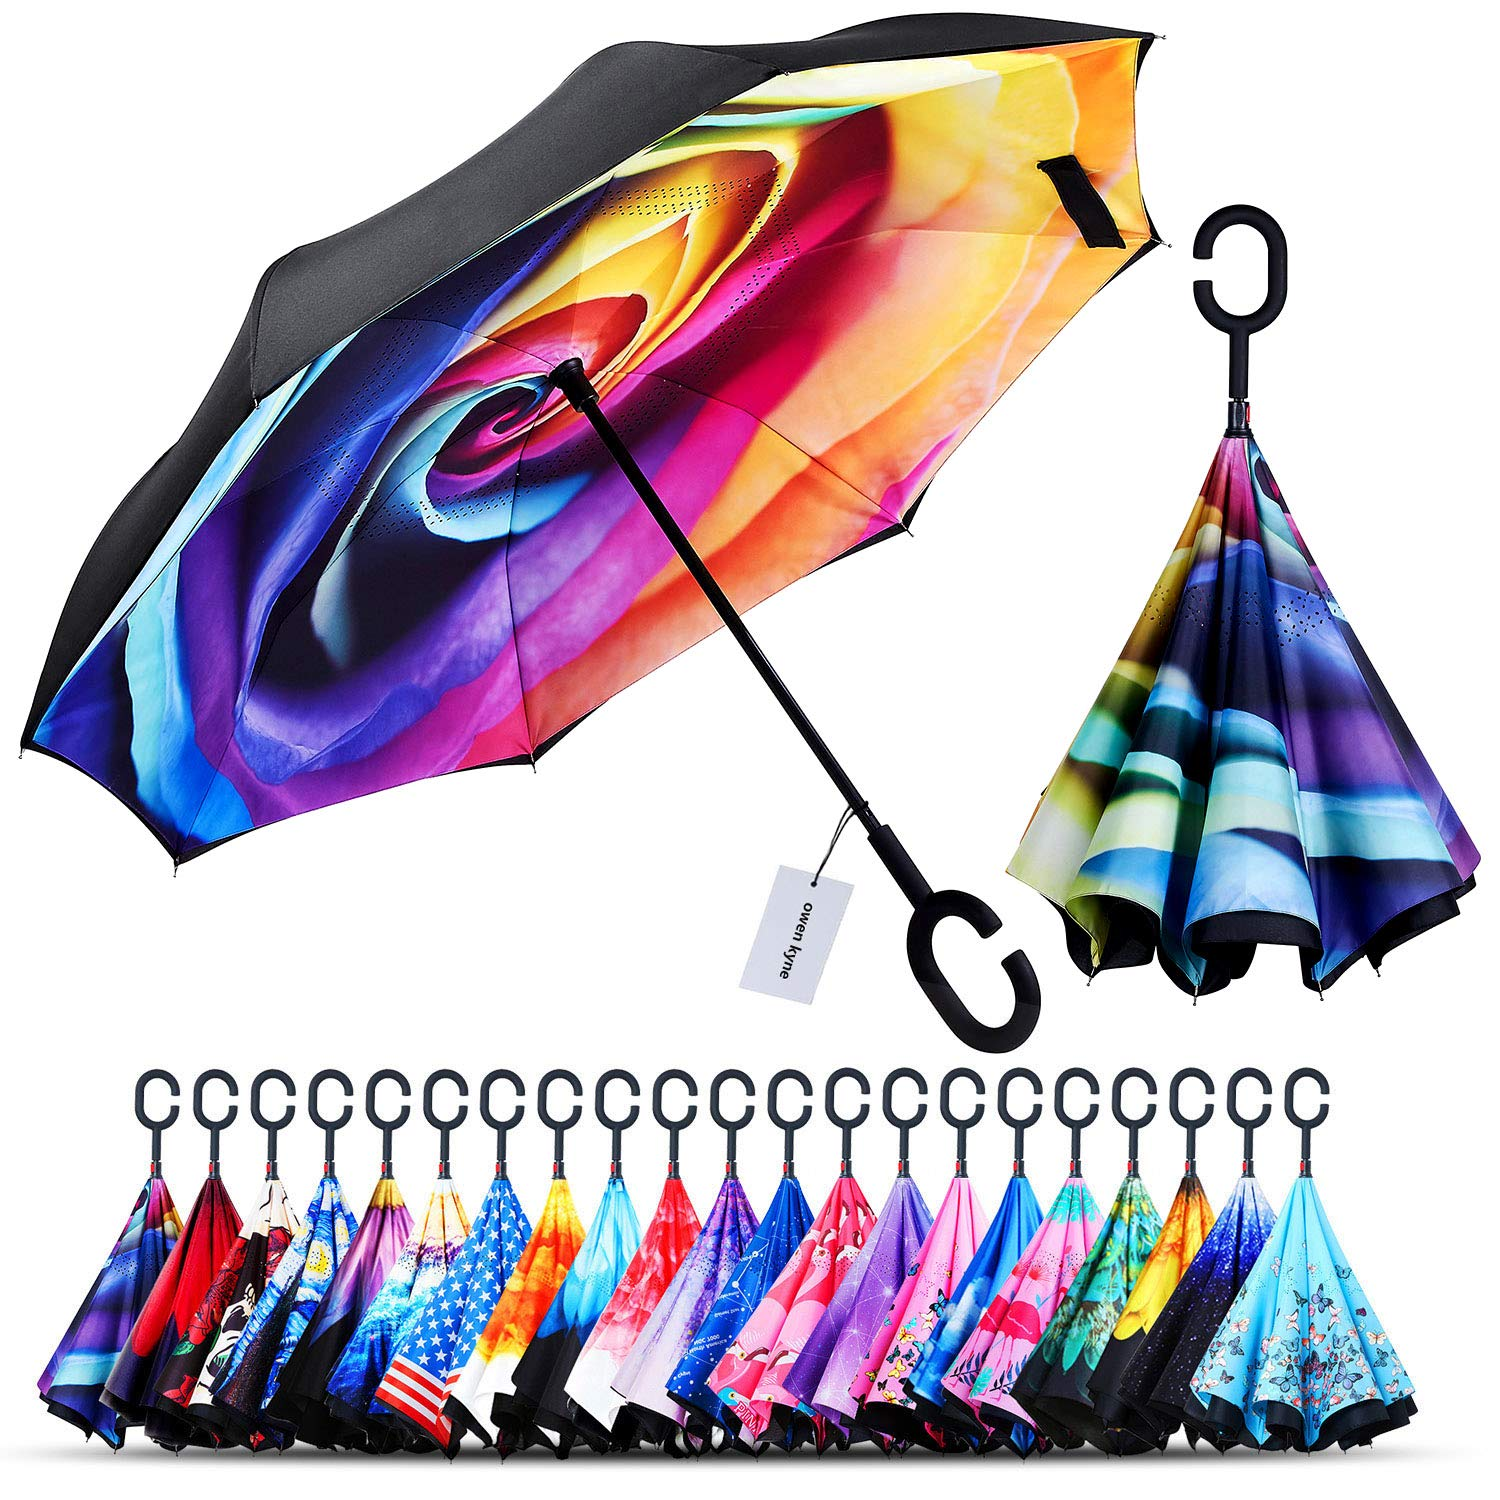 Owen Kyne Windproof Double Layer Folding Inverted Umbrella, Self Stand Upside-Down Rain Protection Car Reverse Umbrellas with C-Shaped Handle (Rainbow Rose) by Owen Kyne